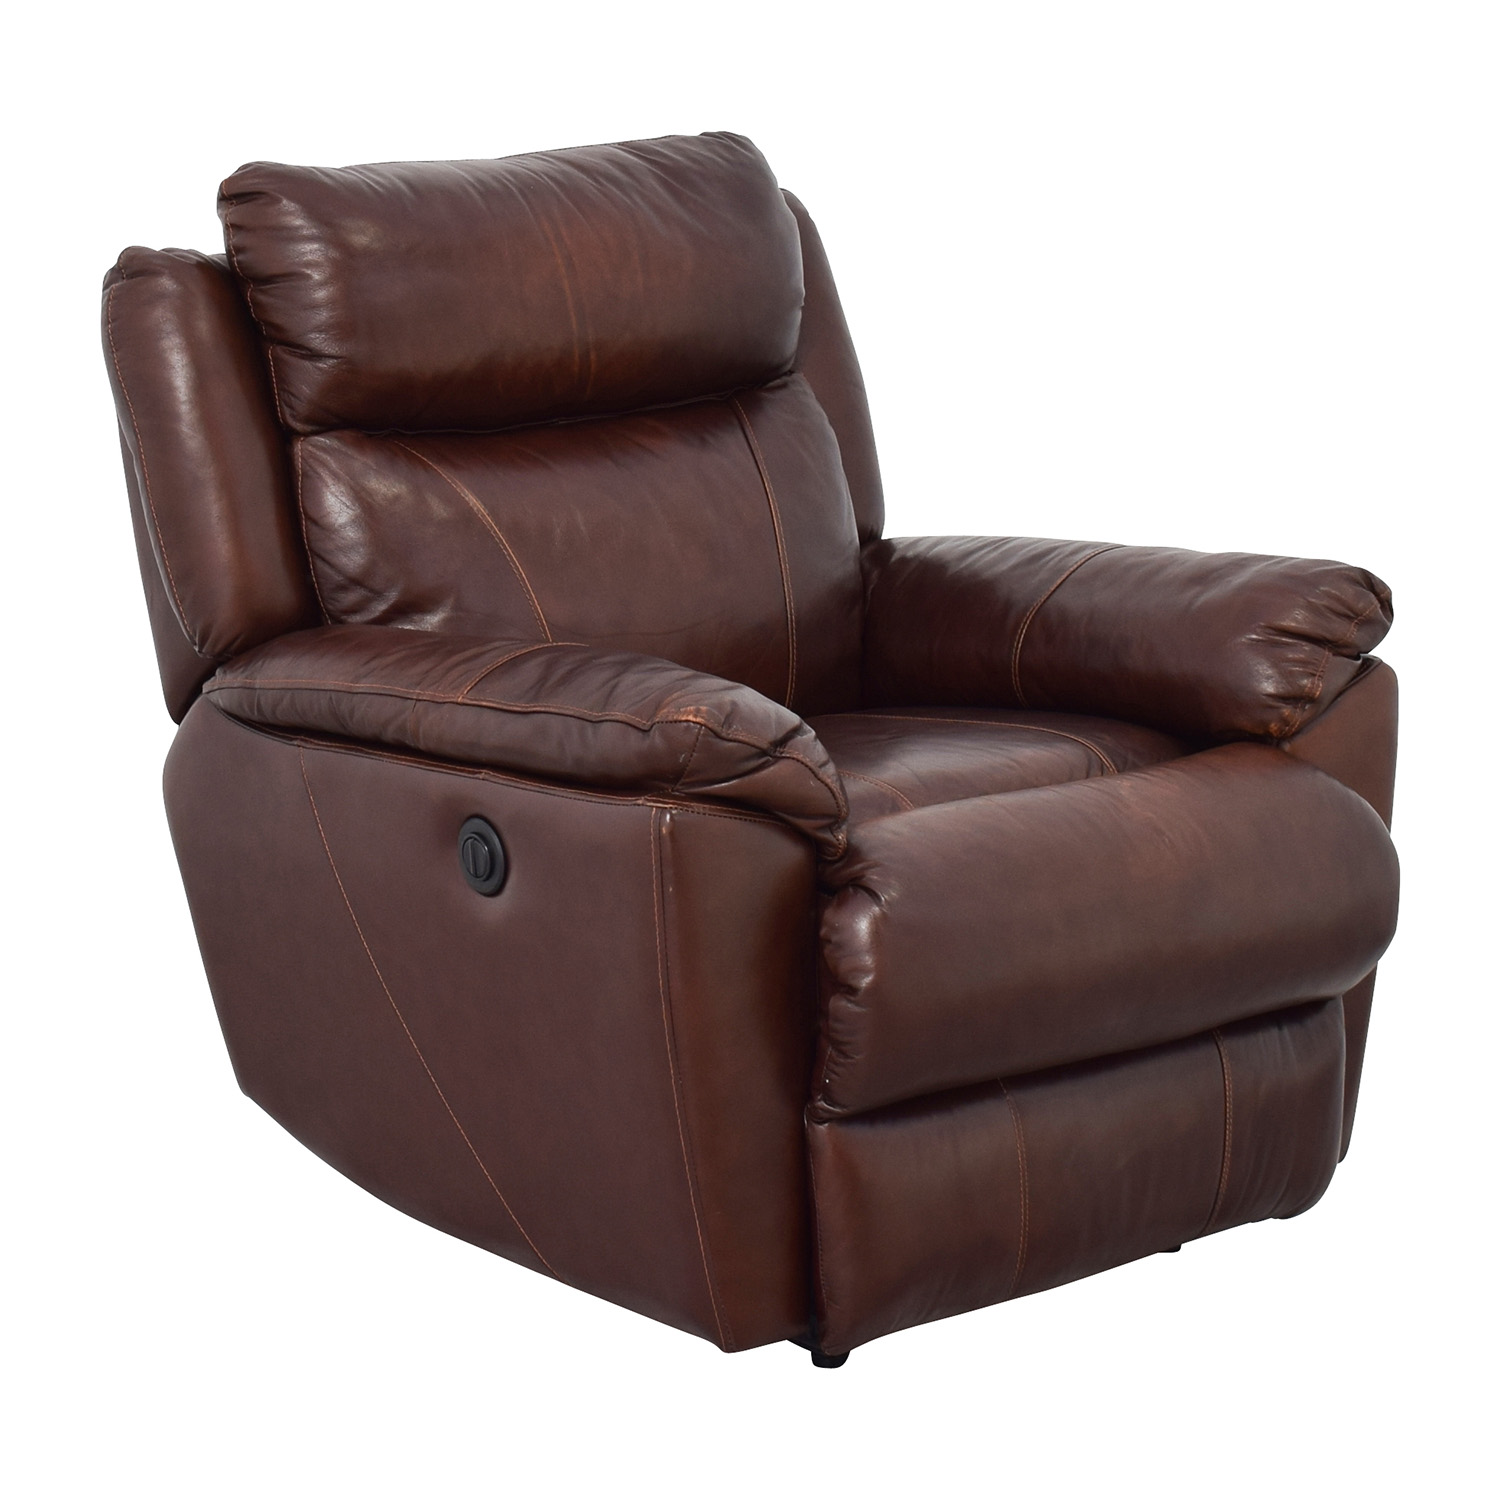 macy chairs recliners chair design metal 61 off 39s brown leather power recliner